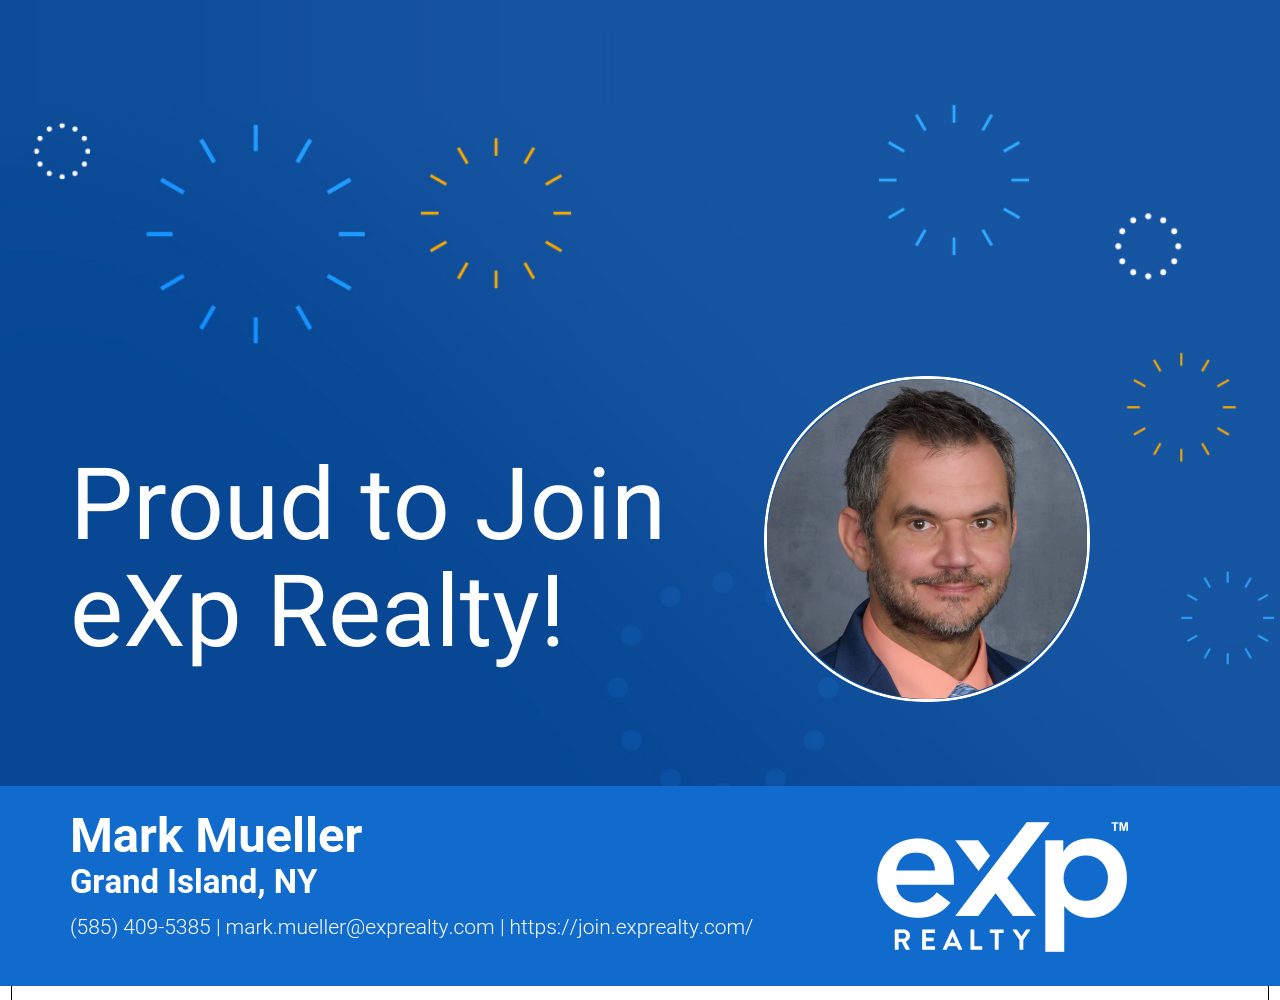 Mark Mueller Joined eXp Realty!